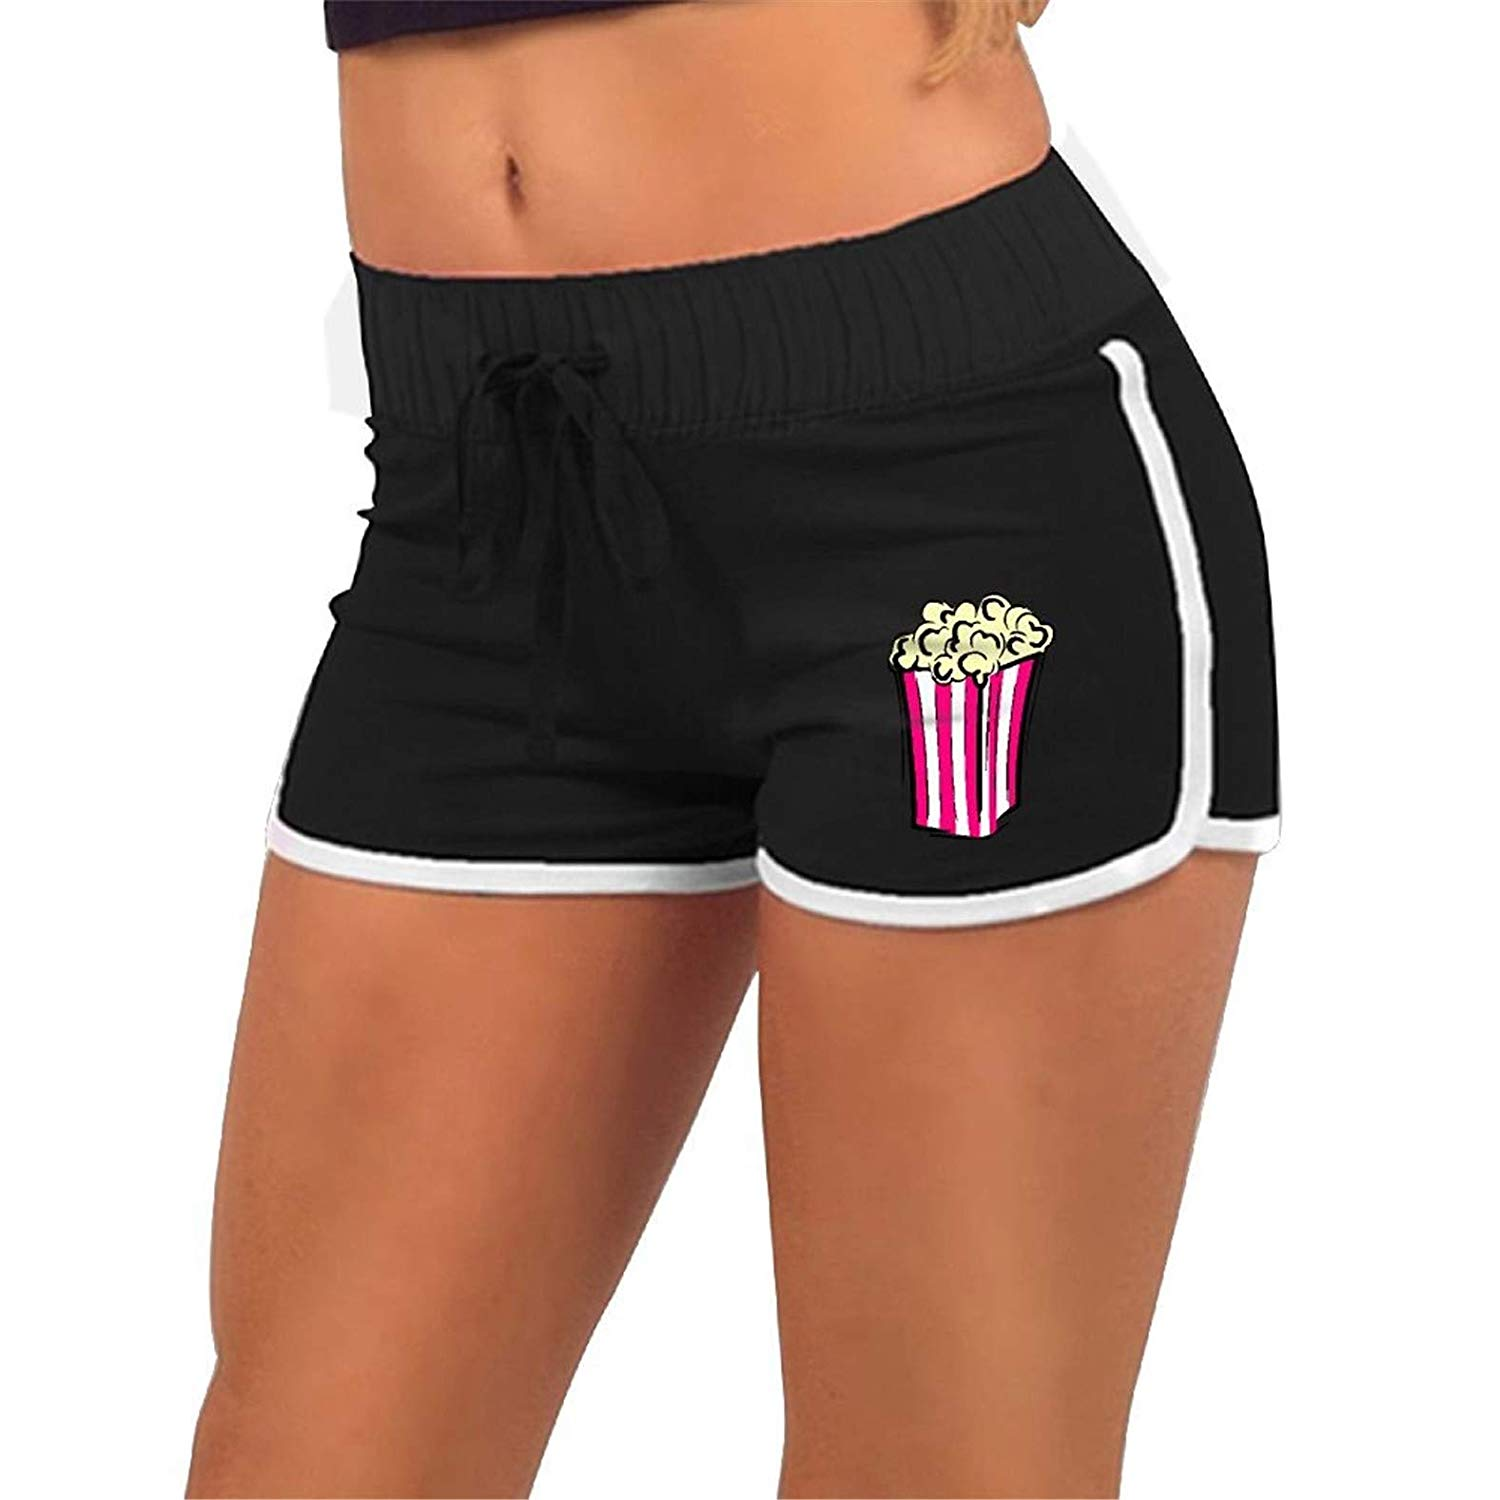 Athletic shorts womens clipart png free download Amazon.com: Running Workout Tights Yoga Shorts, Womens Popcorn Clip ... png free download